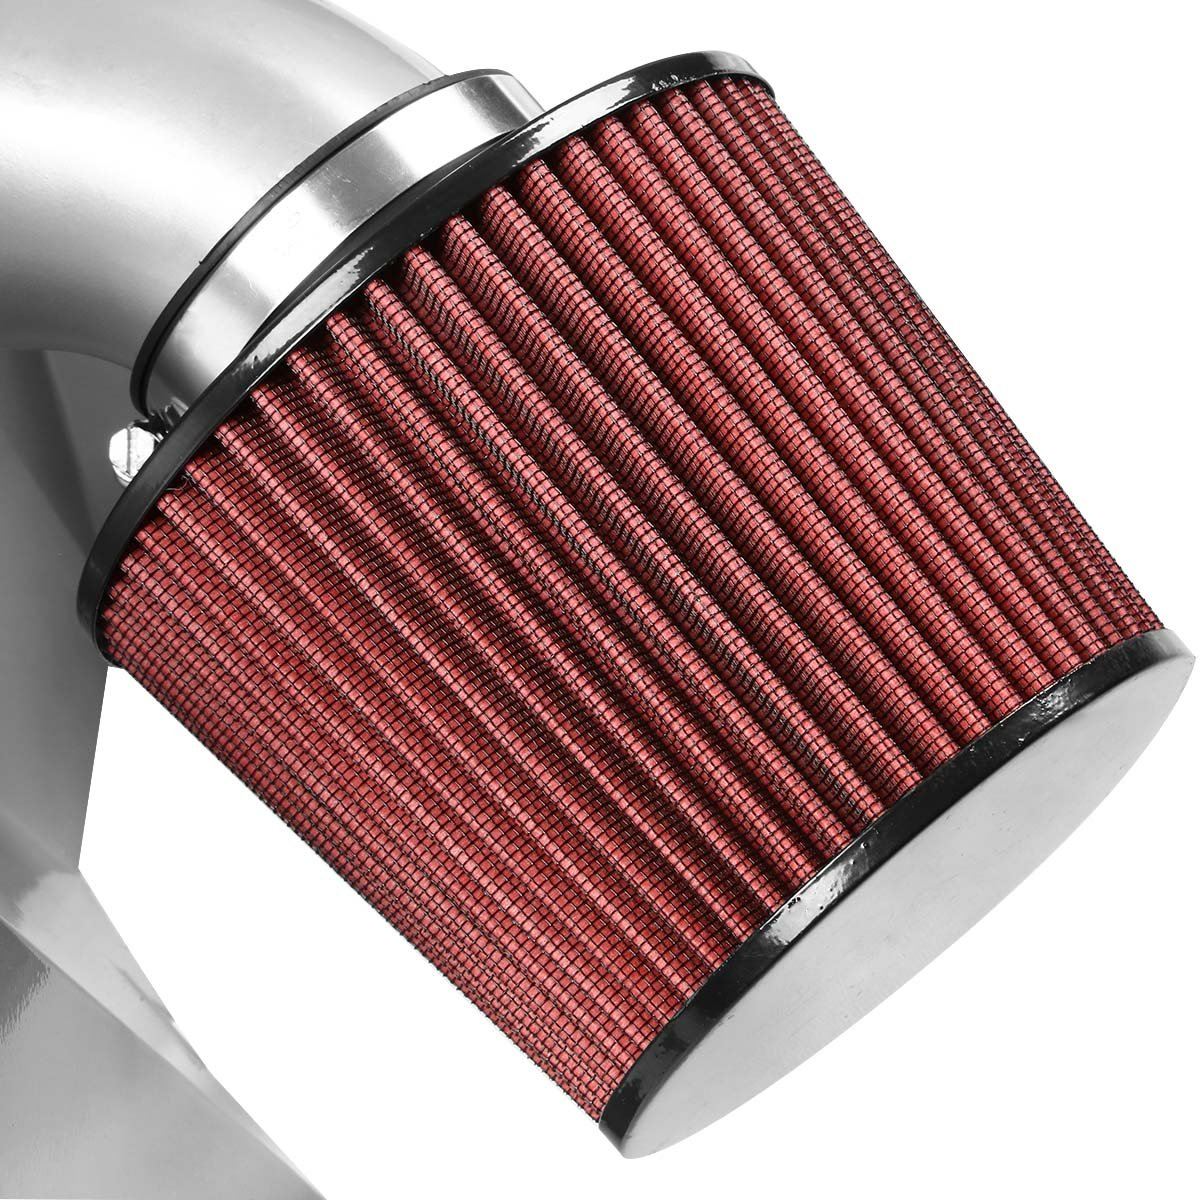 For 99-03 Nissan Frontier Xterra 3.3L AIP-2-HS-NF9933L-SLSL DNA Motoring AIP2HSNF9933LSLSL Cold Air Intake Pipe+Heat Shield System